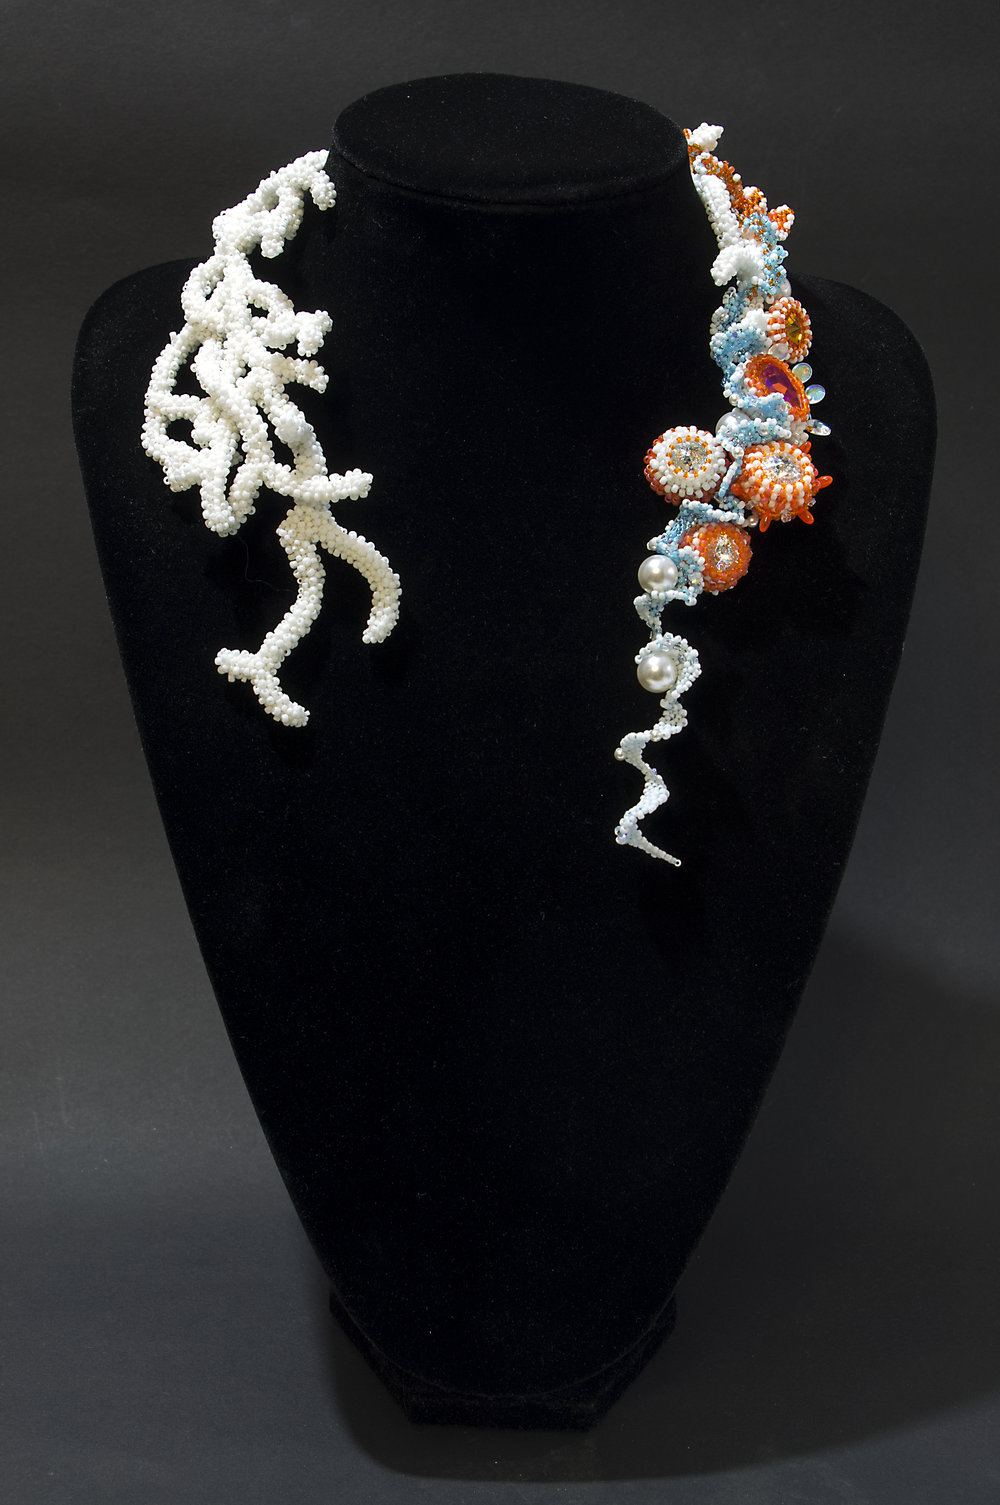 Alexandra Burdina - Prize: Application to the Bead Dreams bead contest